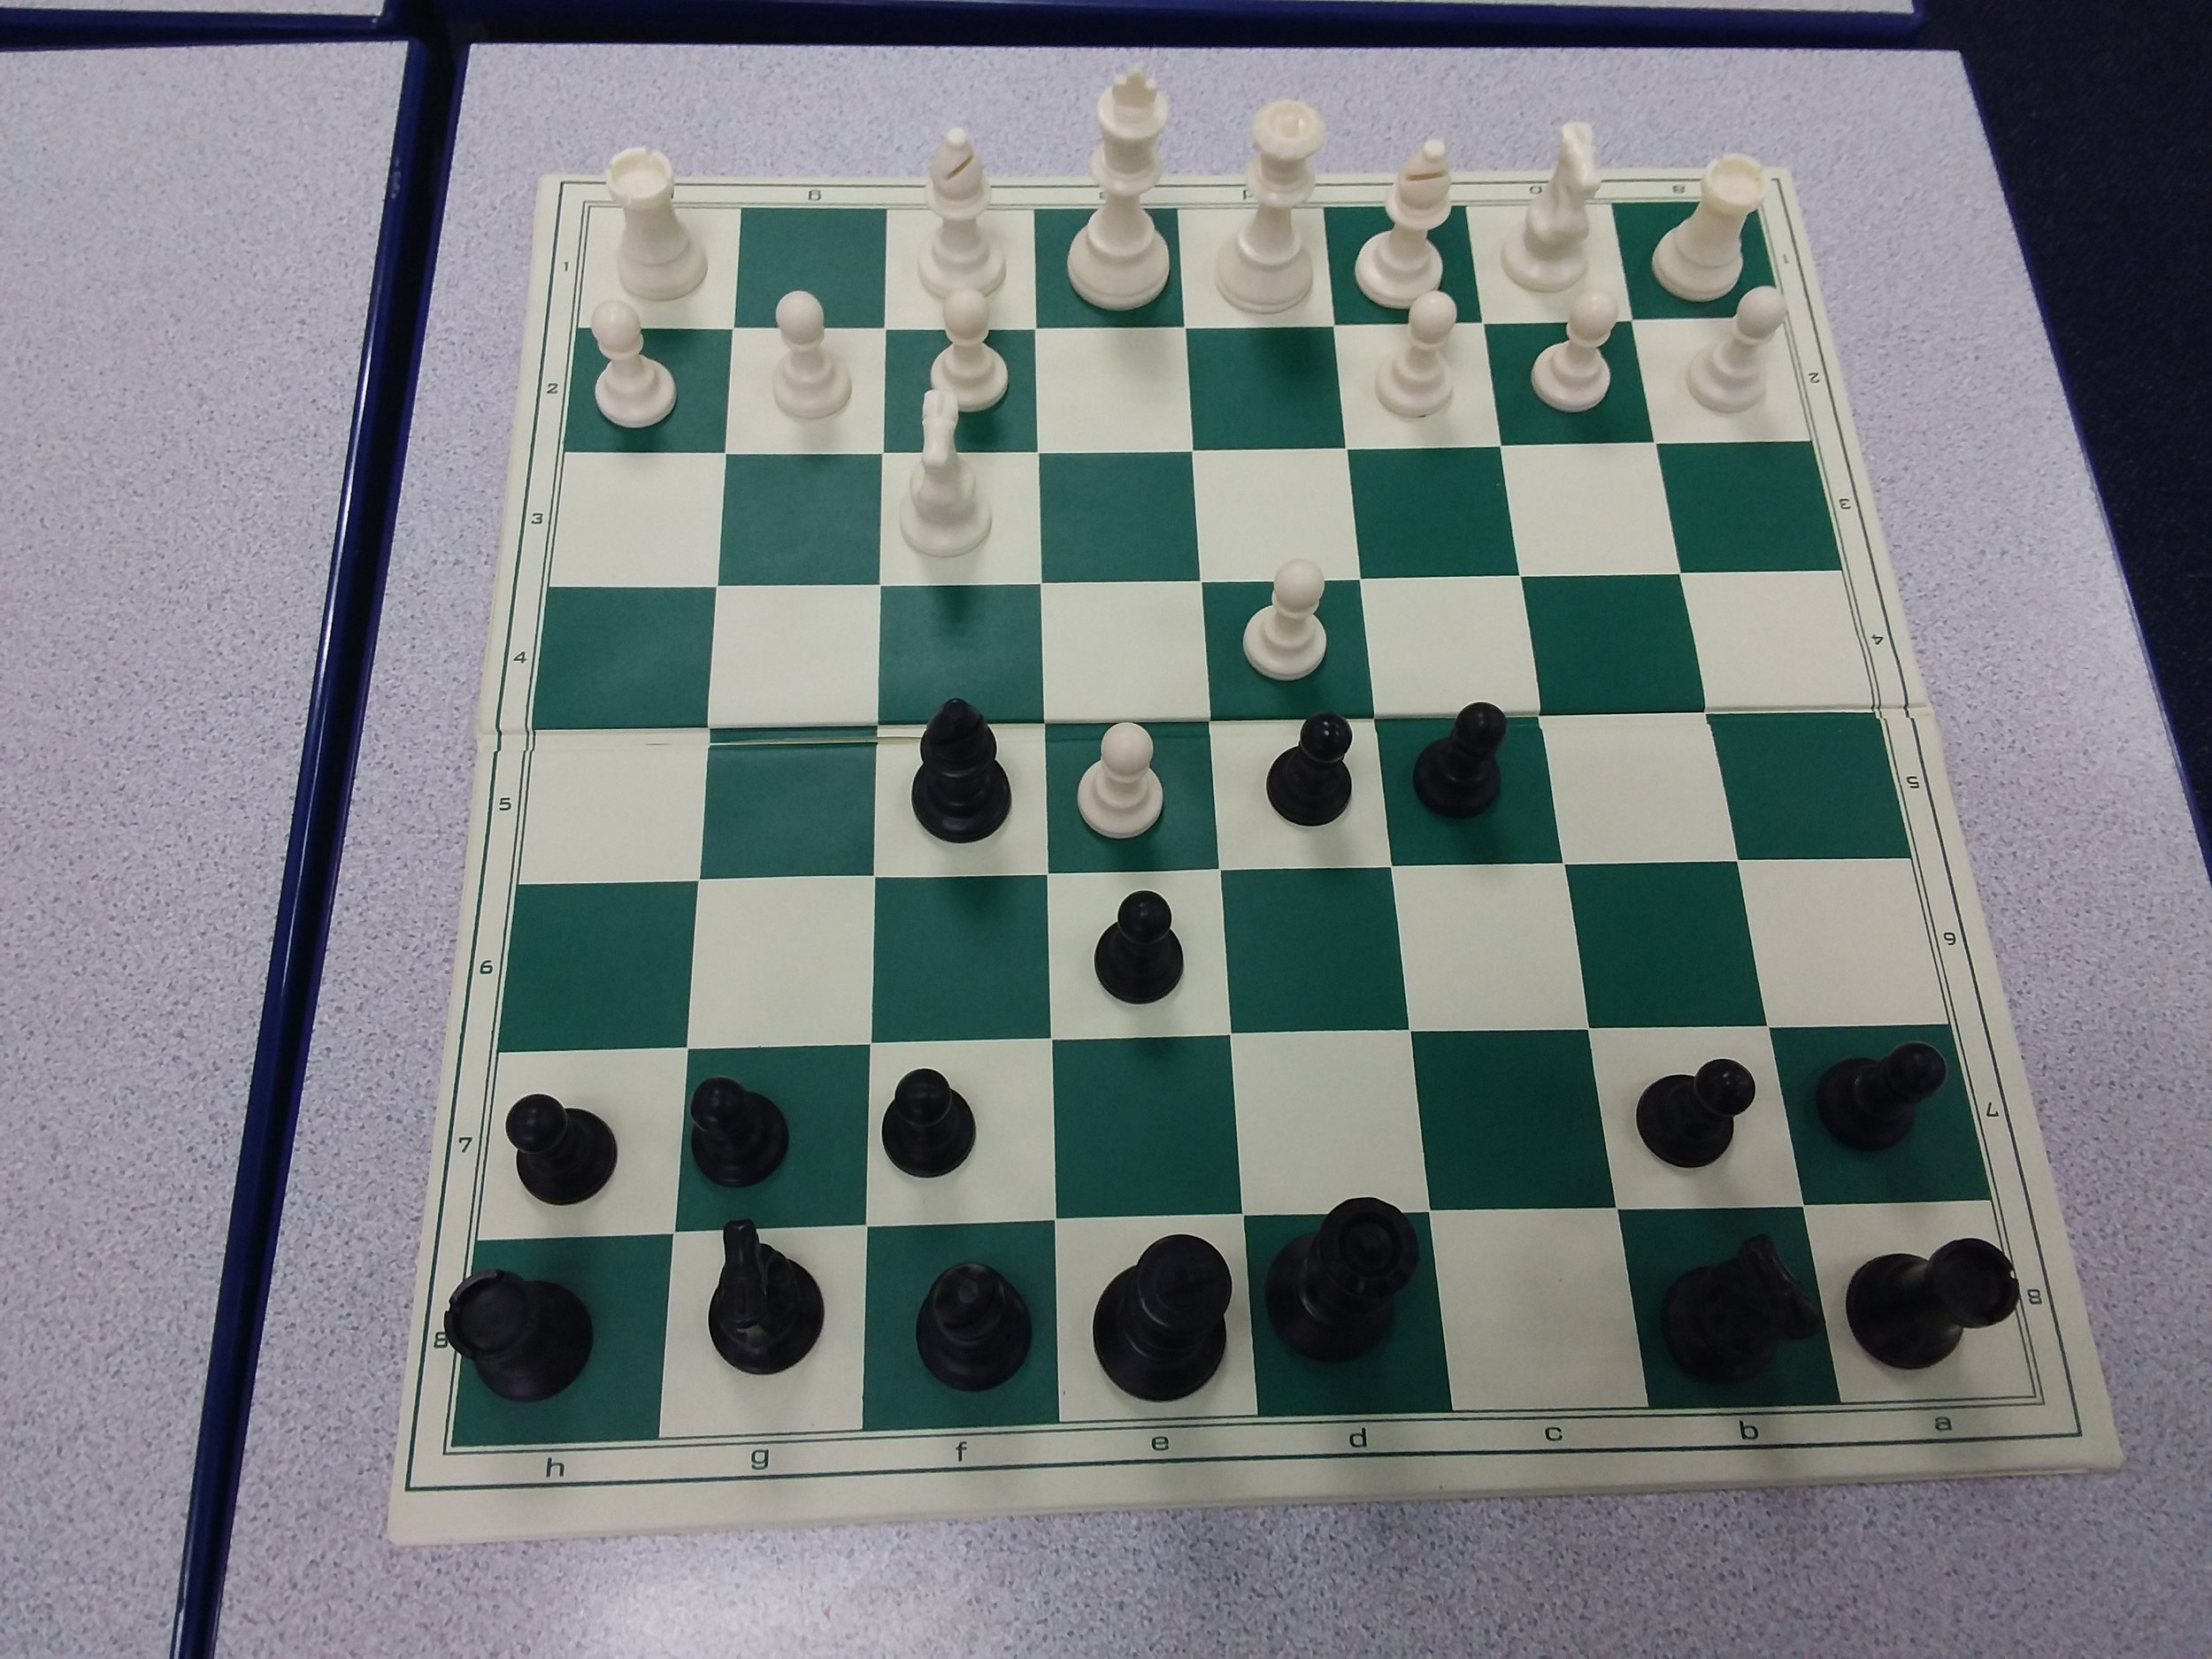 Black can keep threatening the pawn on d4 with moves like nc6 and Qb6